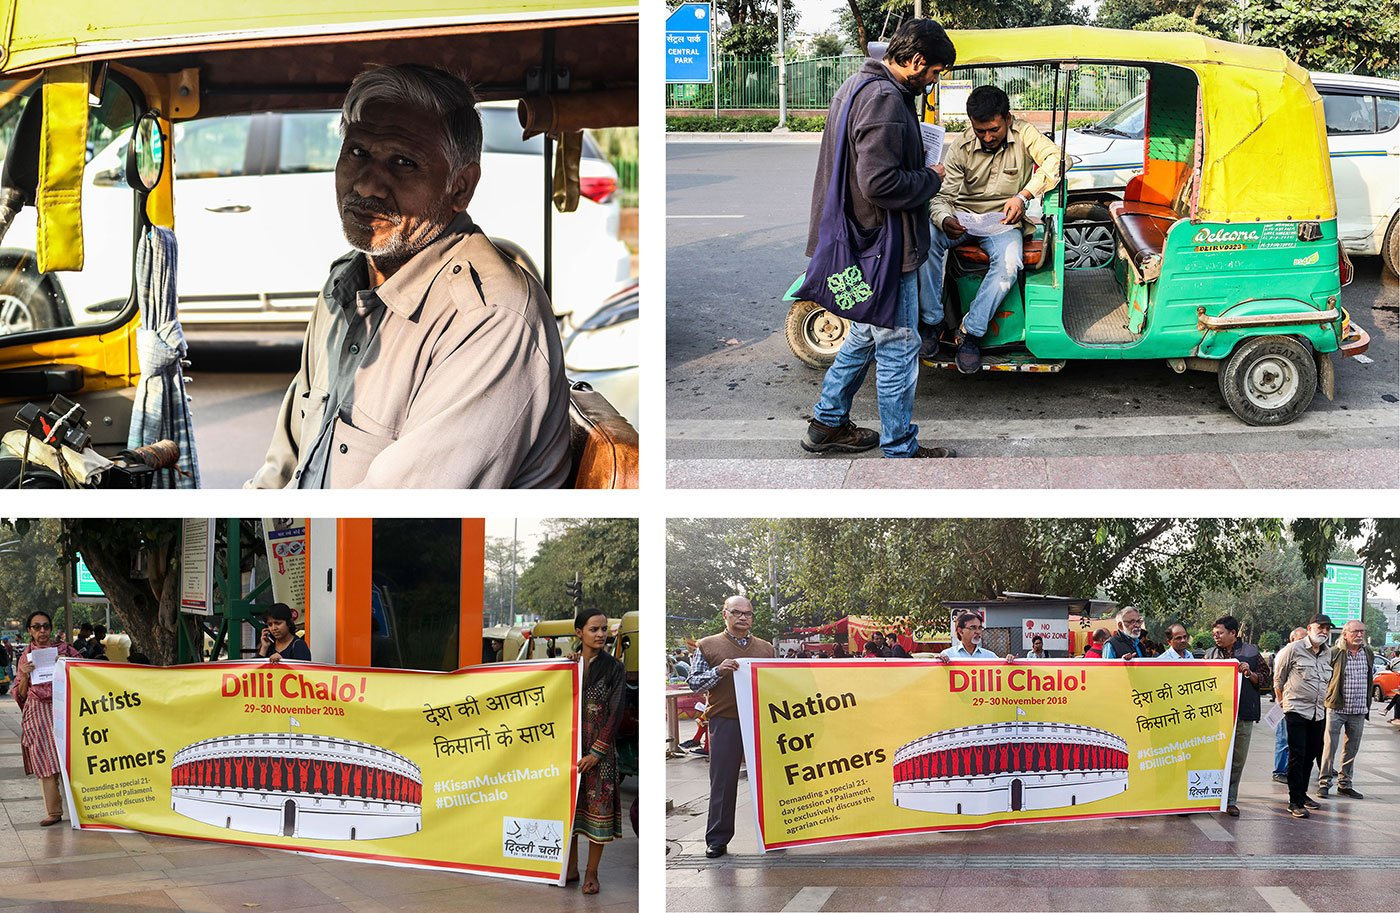 Top left-Jayprakash Yadav, an autorickshaw driver  Top right - A Nation for Farmer volunteer explaining to an auto rickshaw driver about the March Bottom left - Artists for Farmers volunteers spreading awareness about the March Bottom right - Nation for Farmers near the Rajiv Chowk metro station